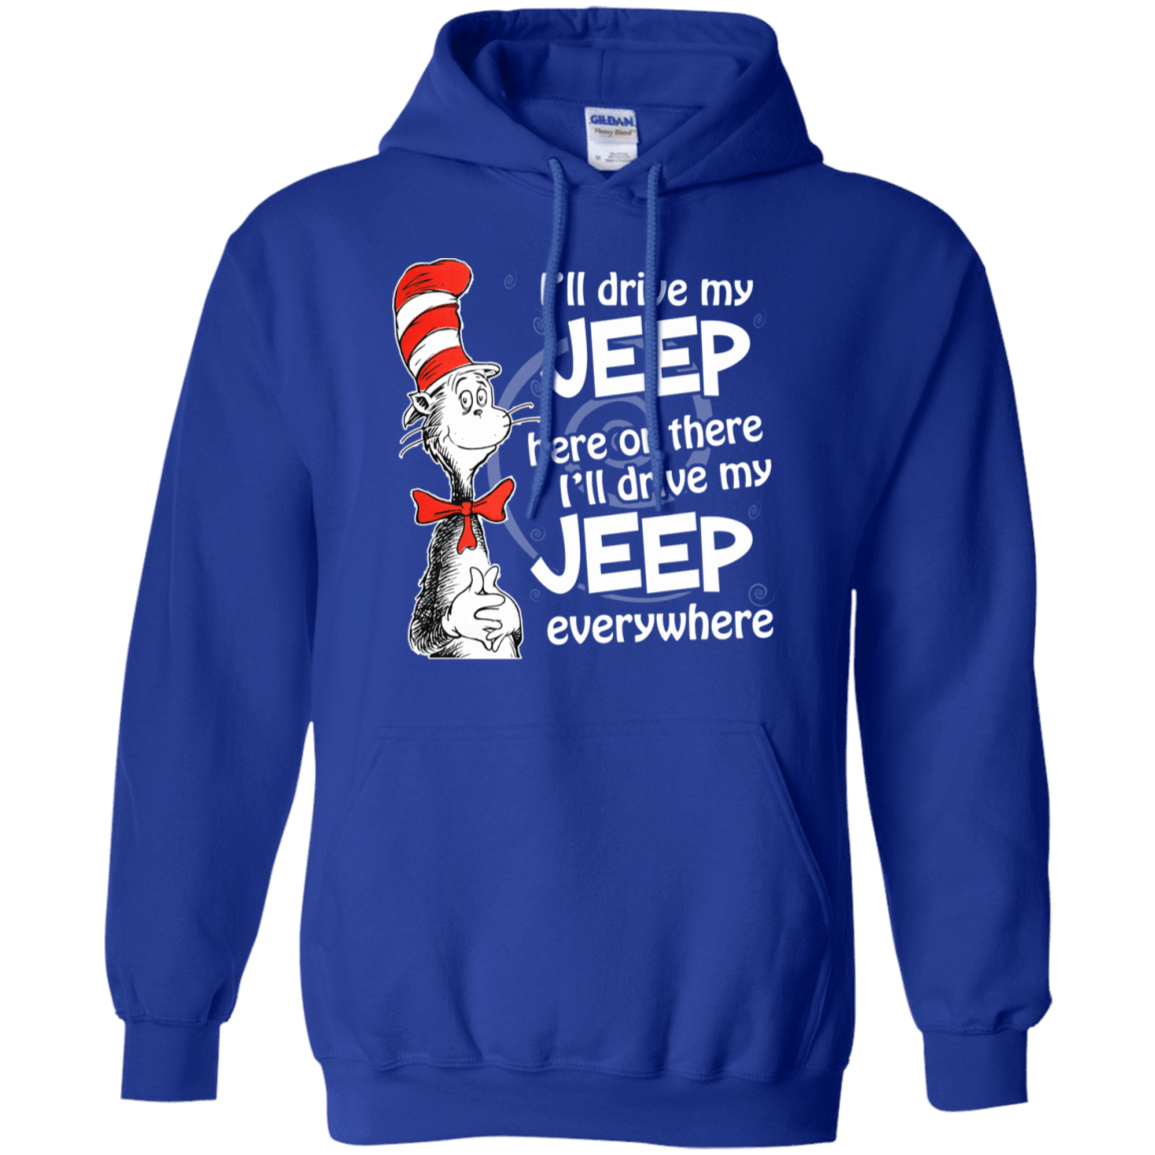 I'll Drive My Jeep Here Or There I'll Driver My Jeep Everywhere 541-4765-73422717-23175 - Tee Ript